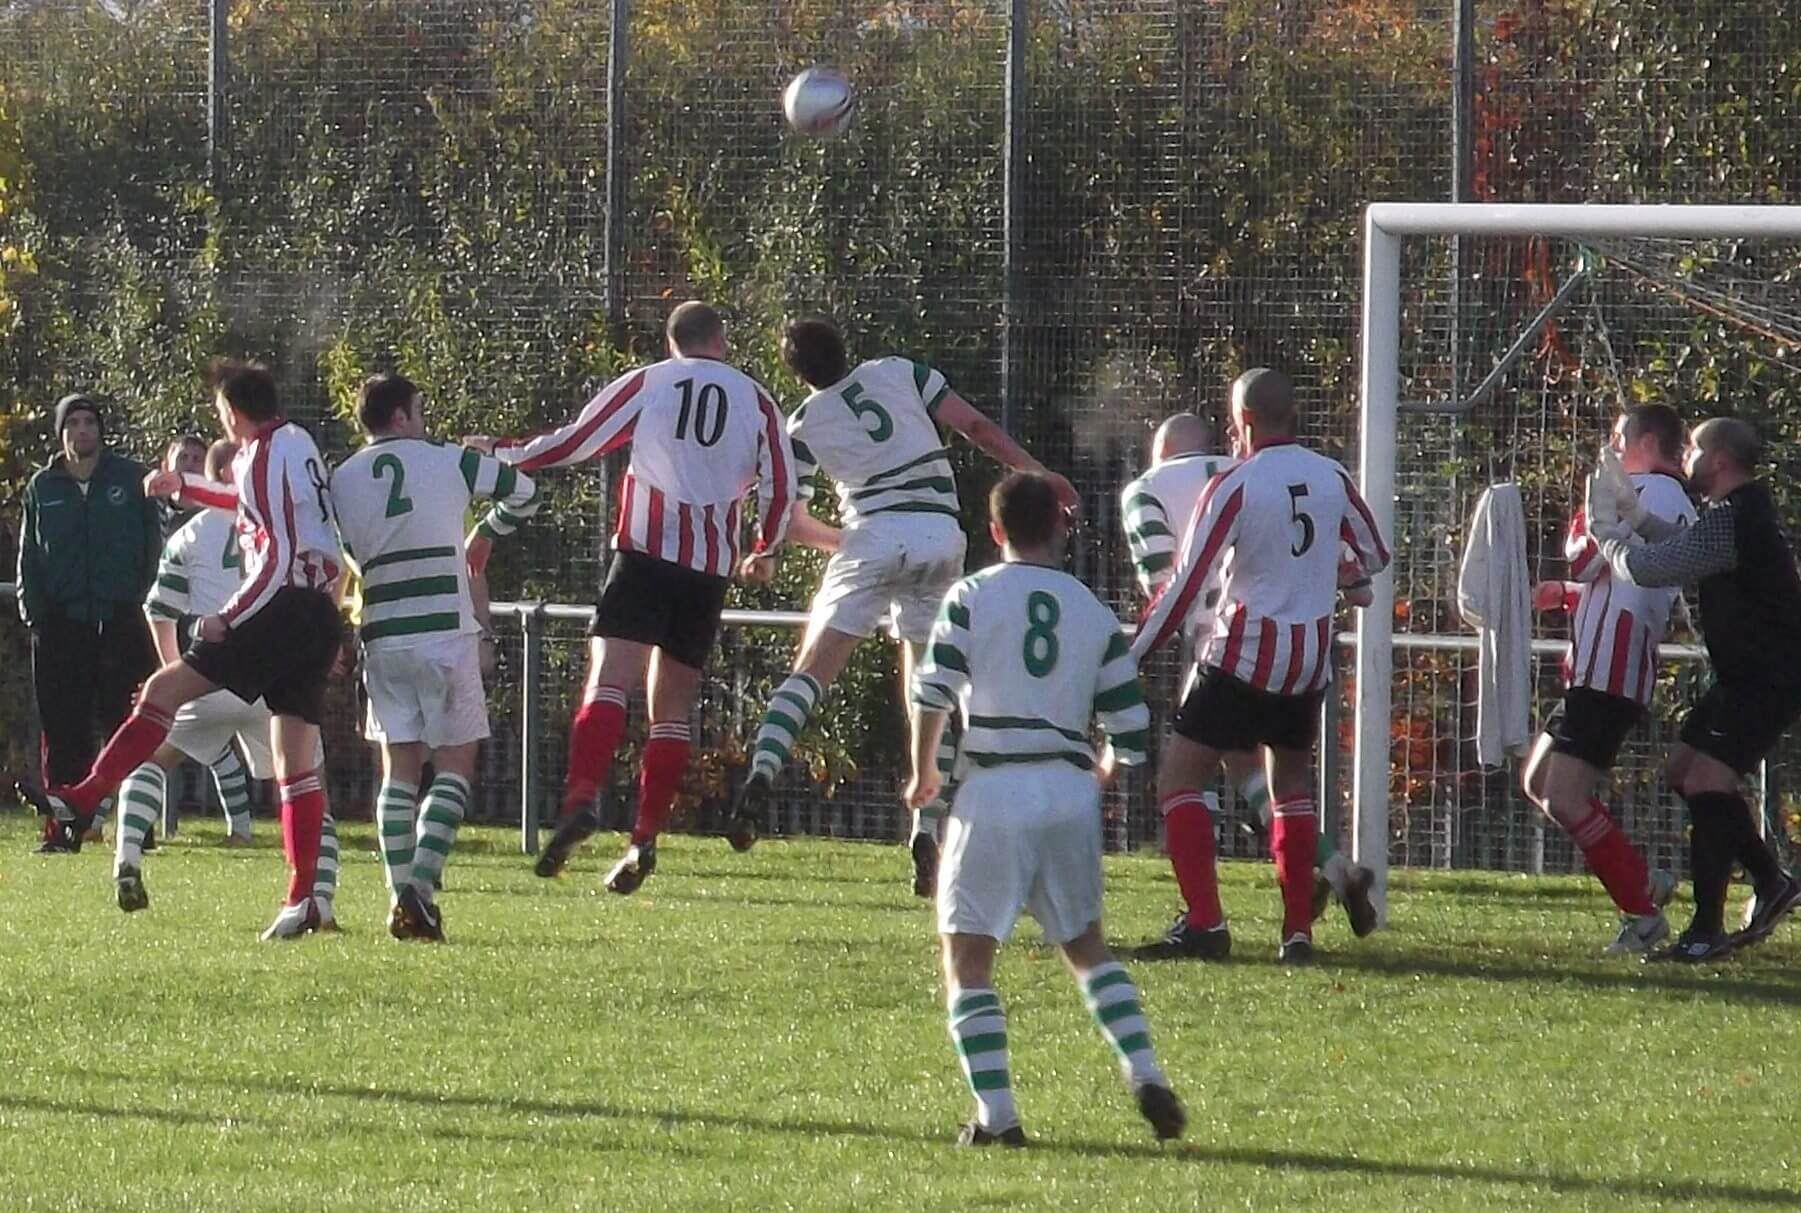 Ross McGeachie first half header